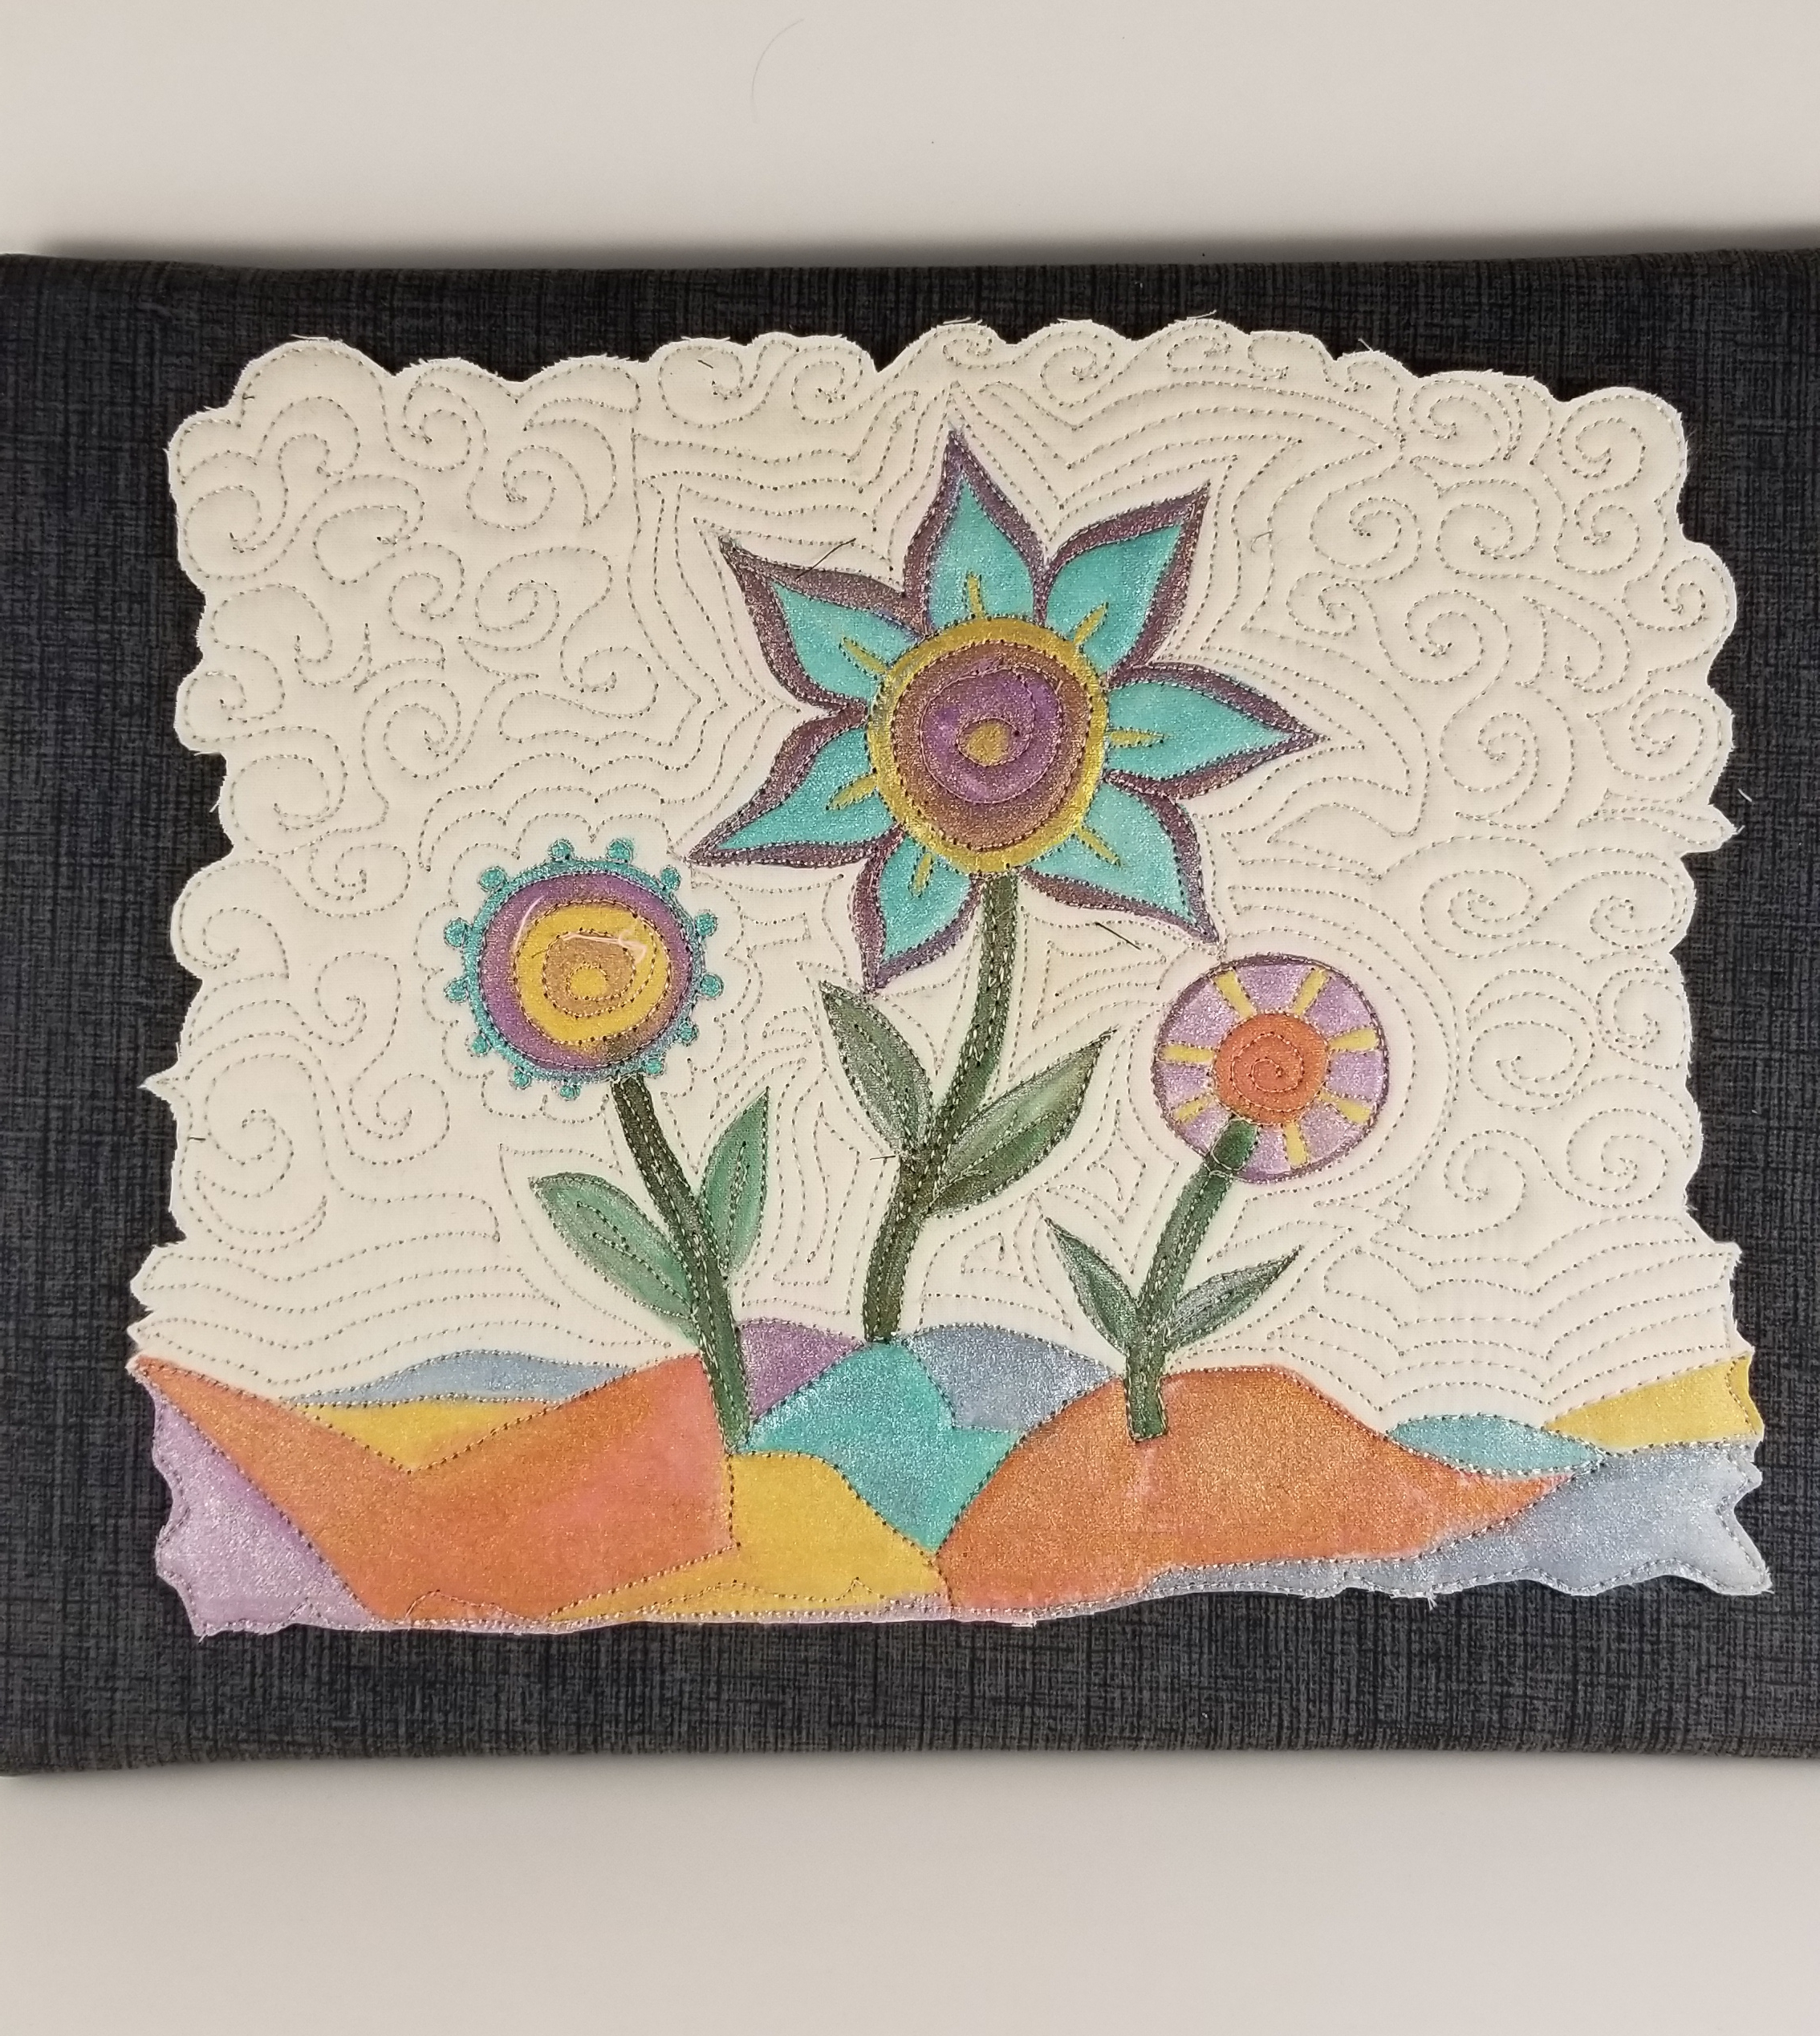 Paint, free motion quilting, and thread sketching on fabric. -